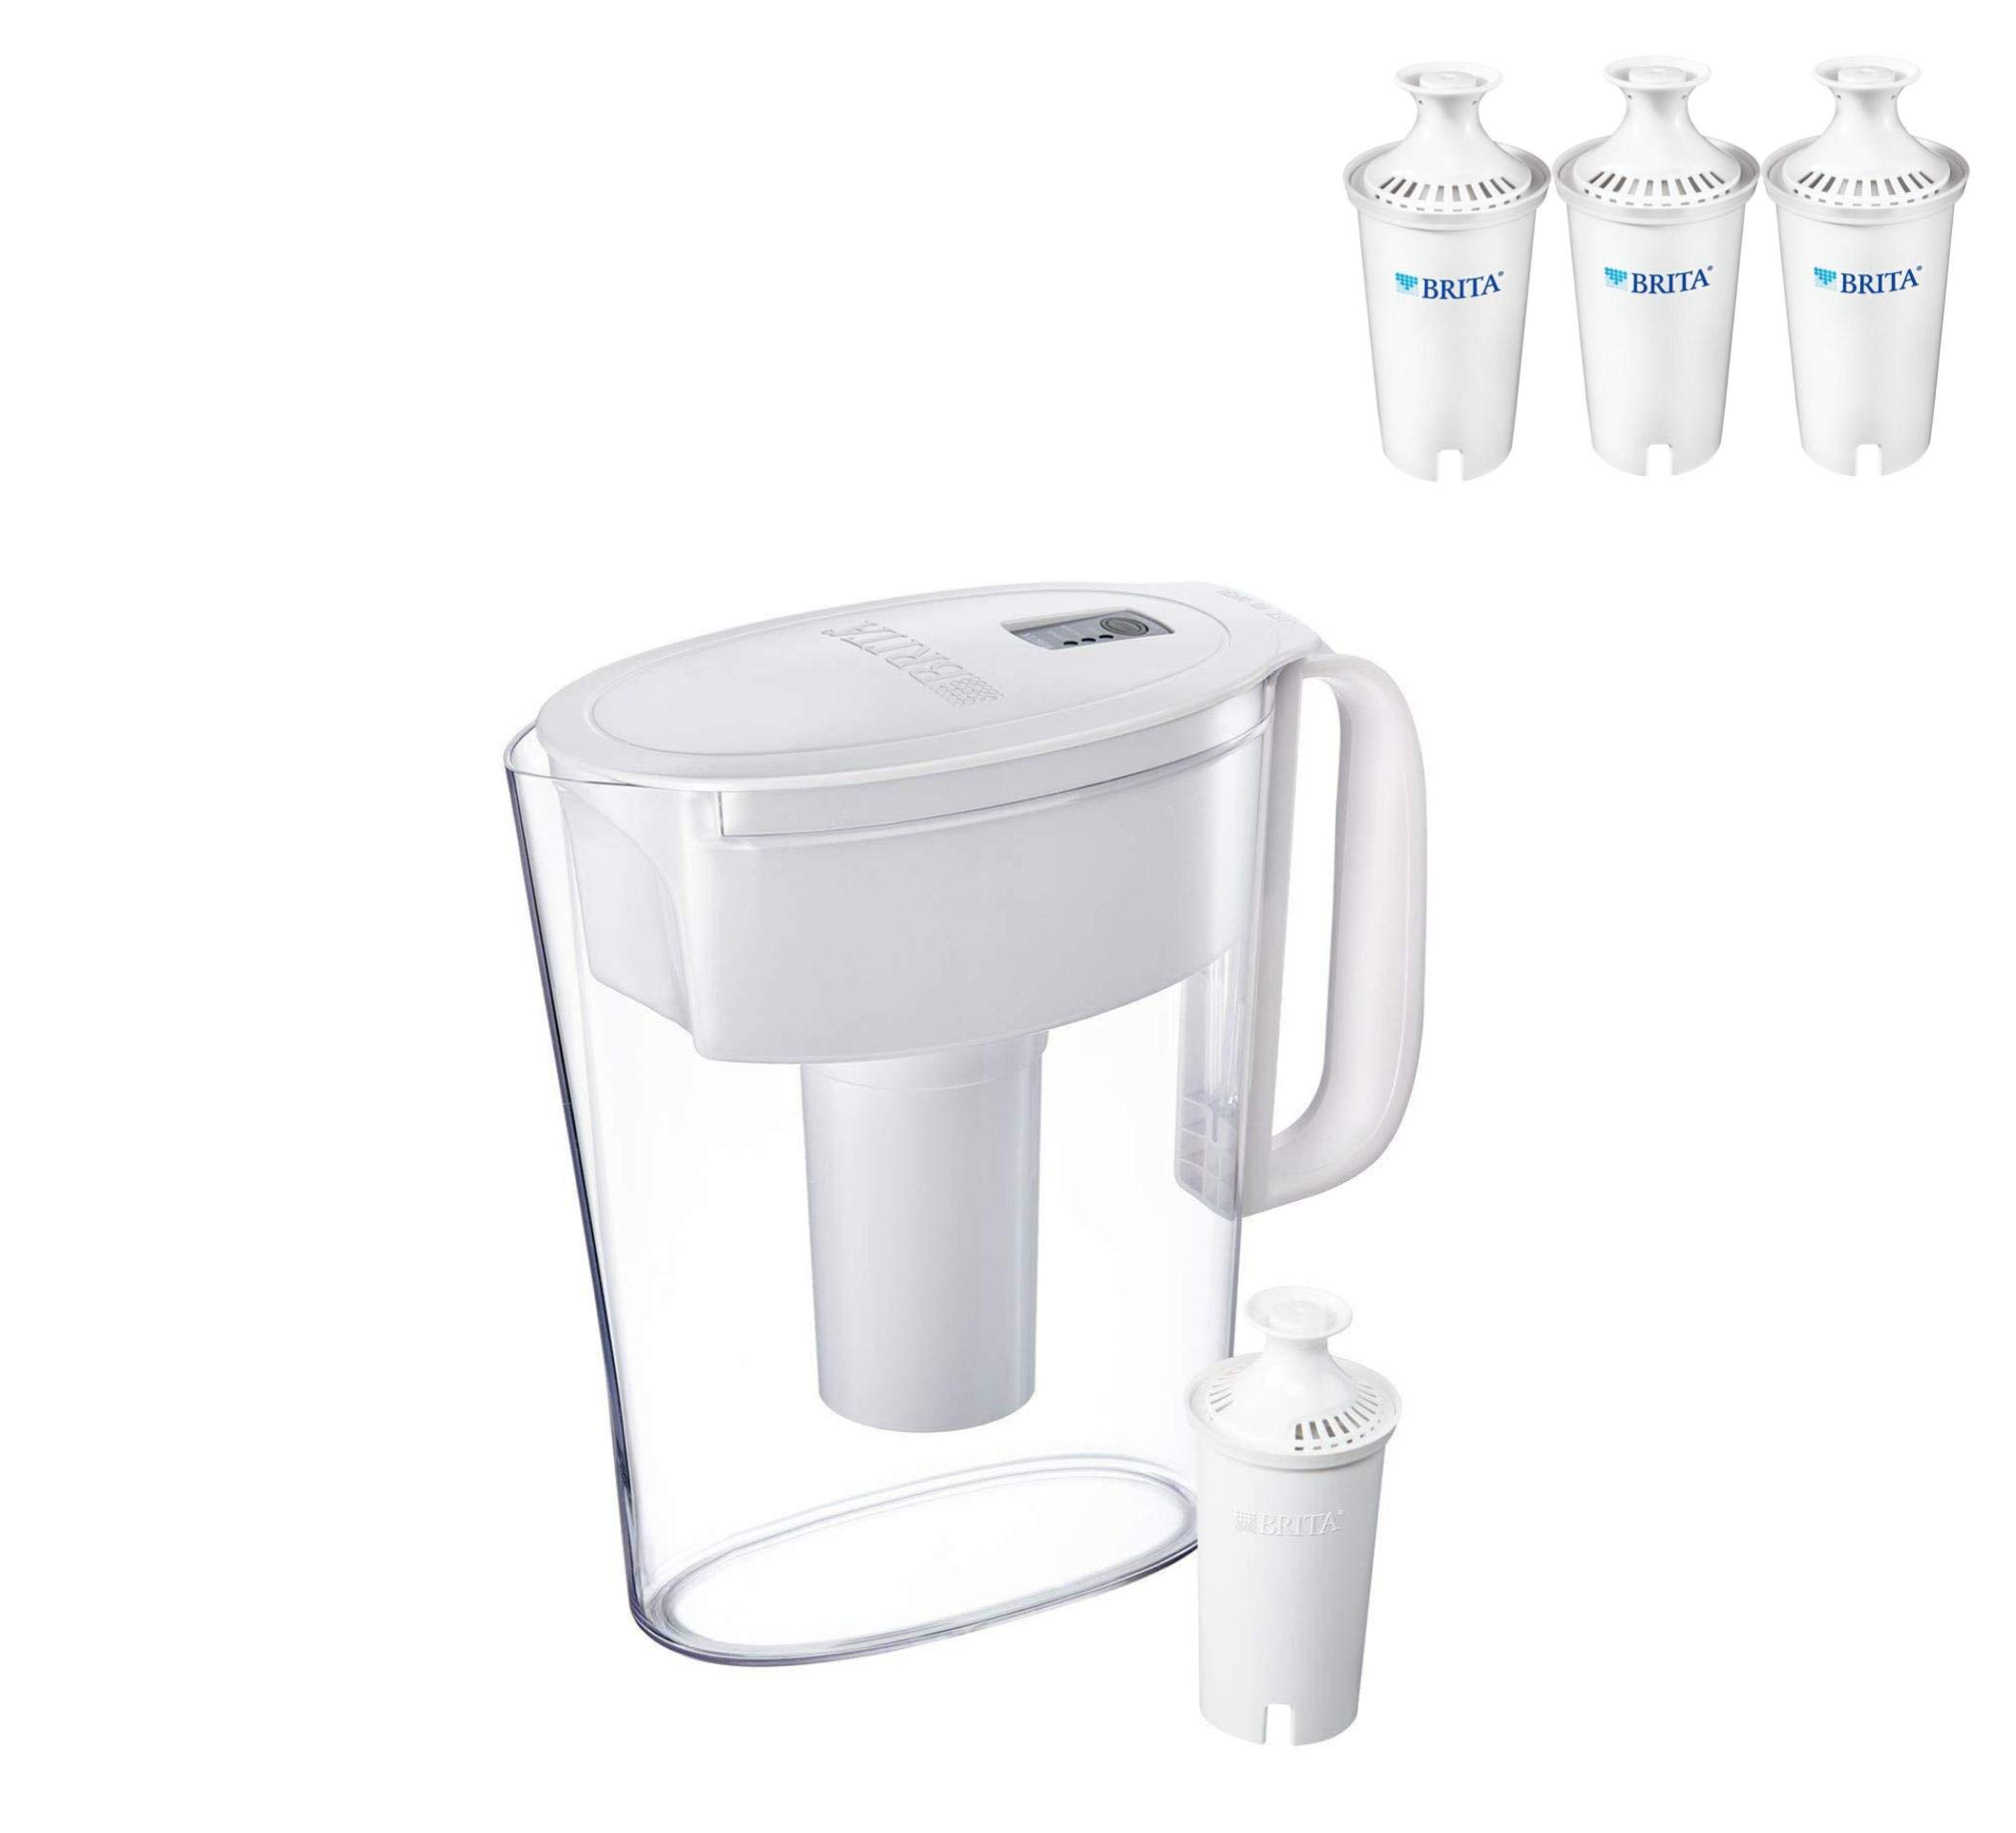 Brita Small 5 Cup Metro Water Pitcher - BPA Free - White (Pitcher with 4 Filters Included)